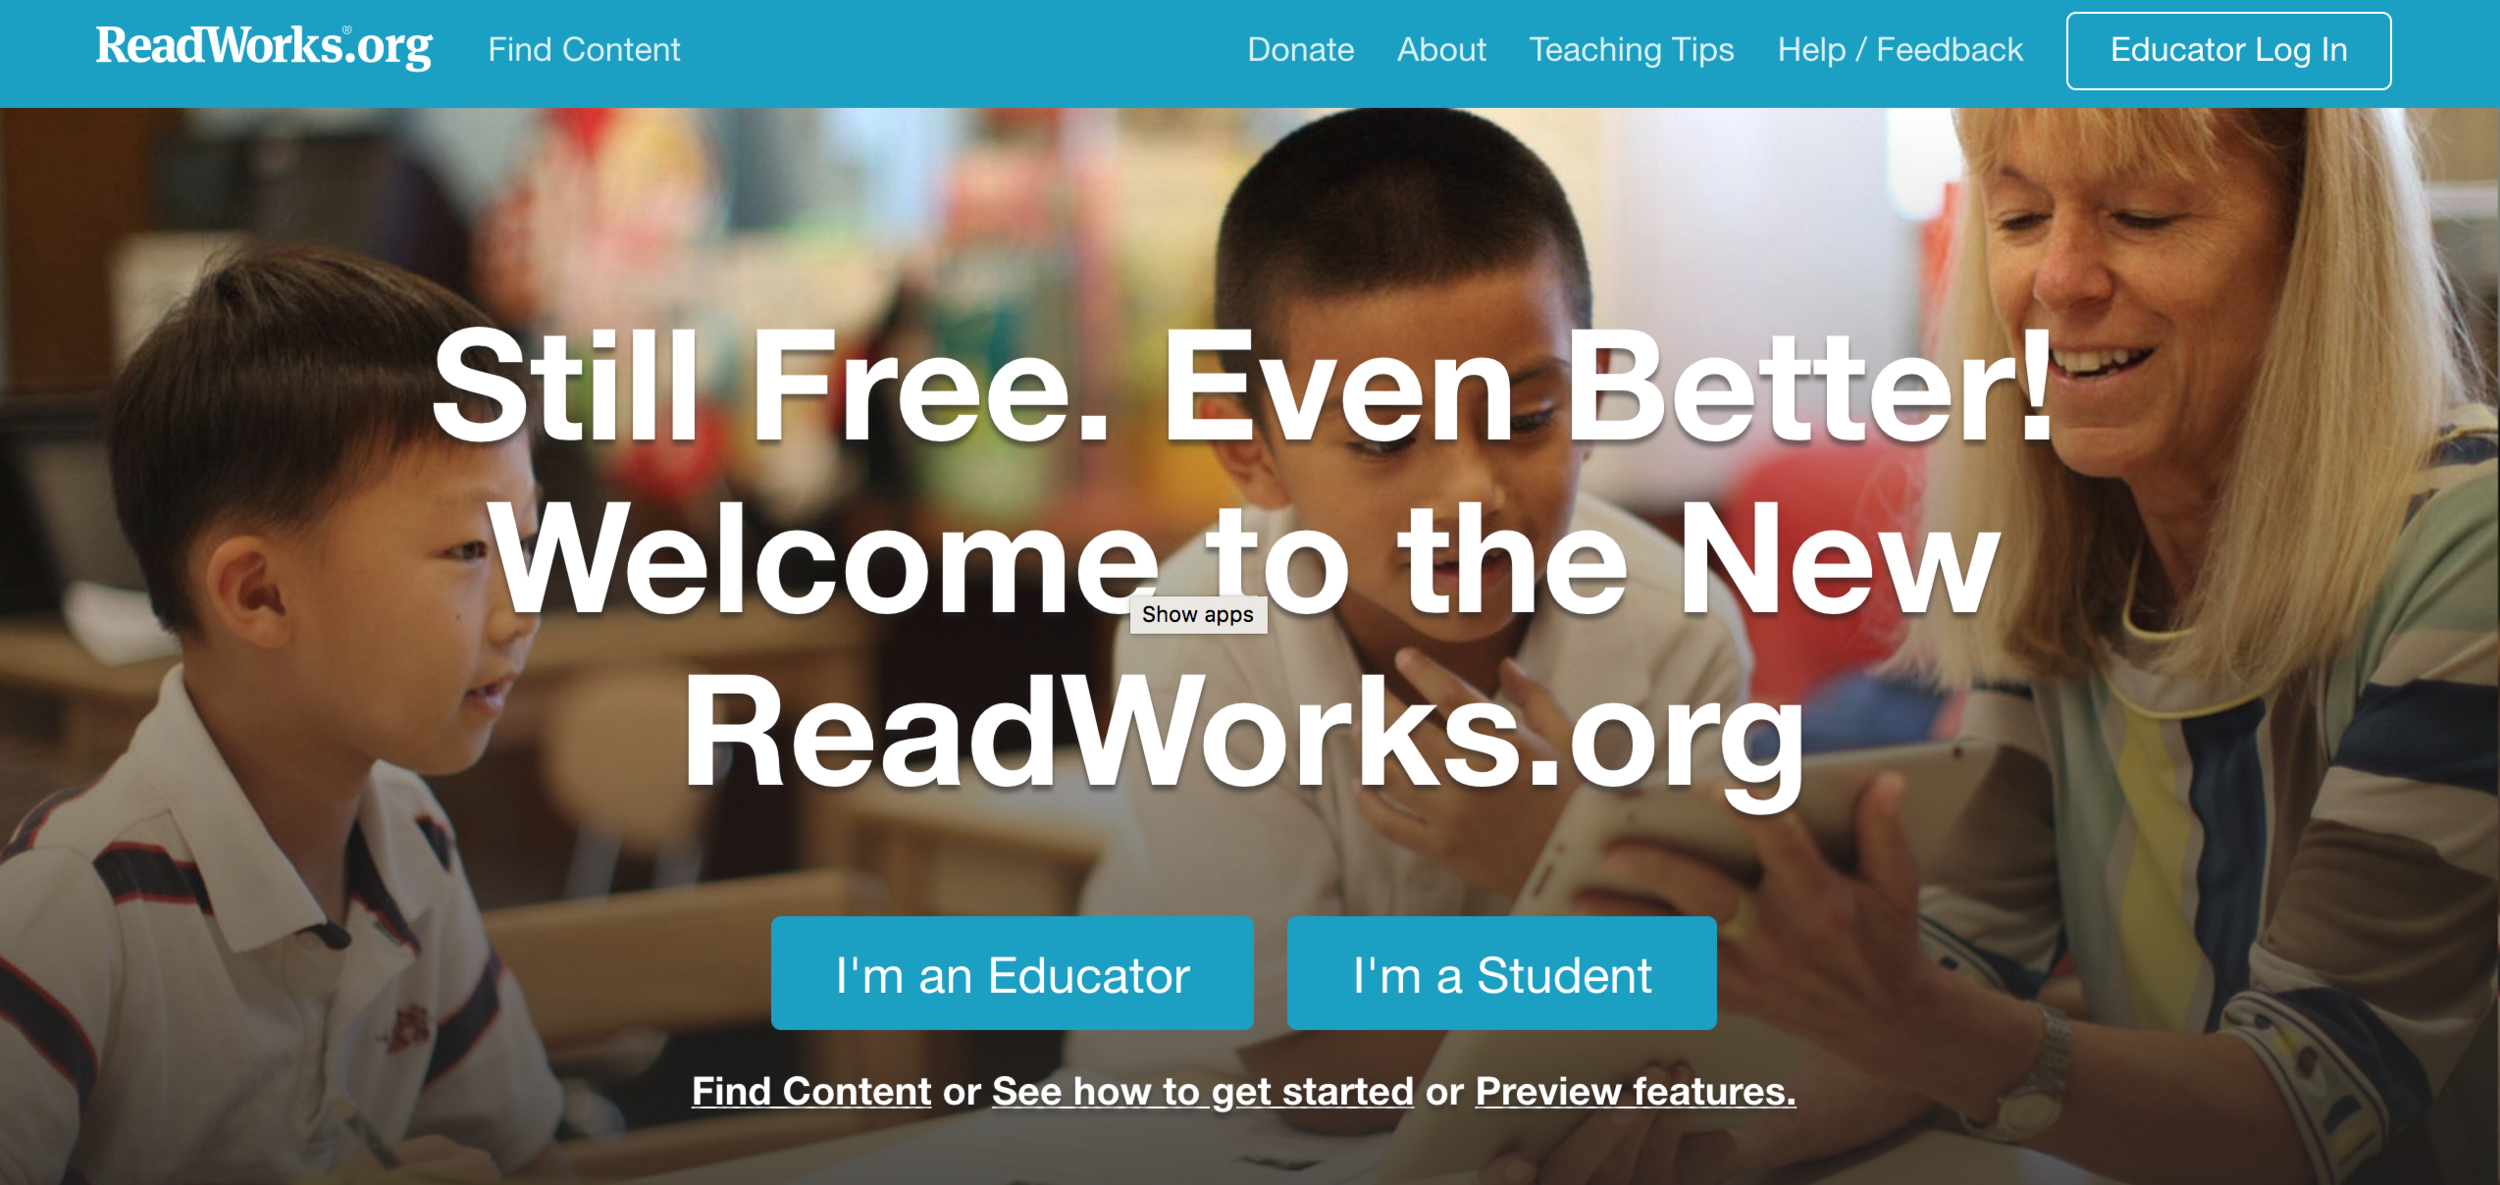 ReadWorks - On occasion, I have used assessments from ReadWorks, and I was impressed that the reading sections were standards specific for teachers and genuinely interesting for teachers. I have never been fully in this ecosphere, but it seems like when I check in every few months, there is some major feature added. I would love to explore this more fully.